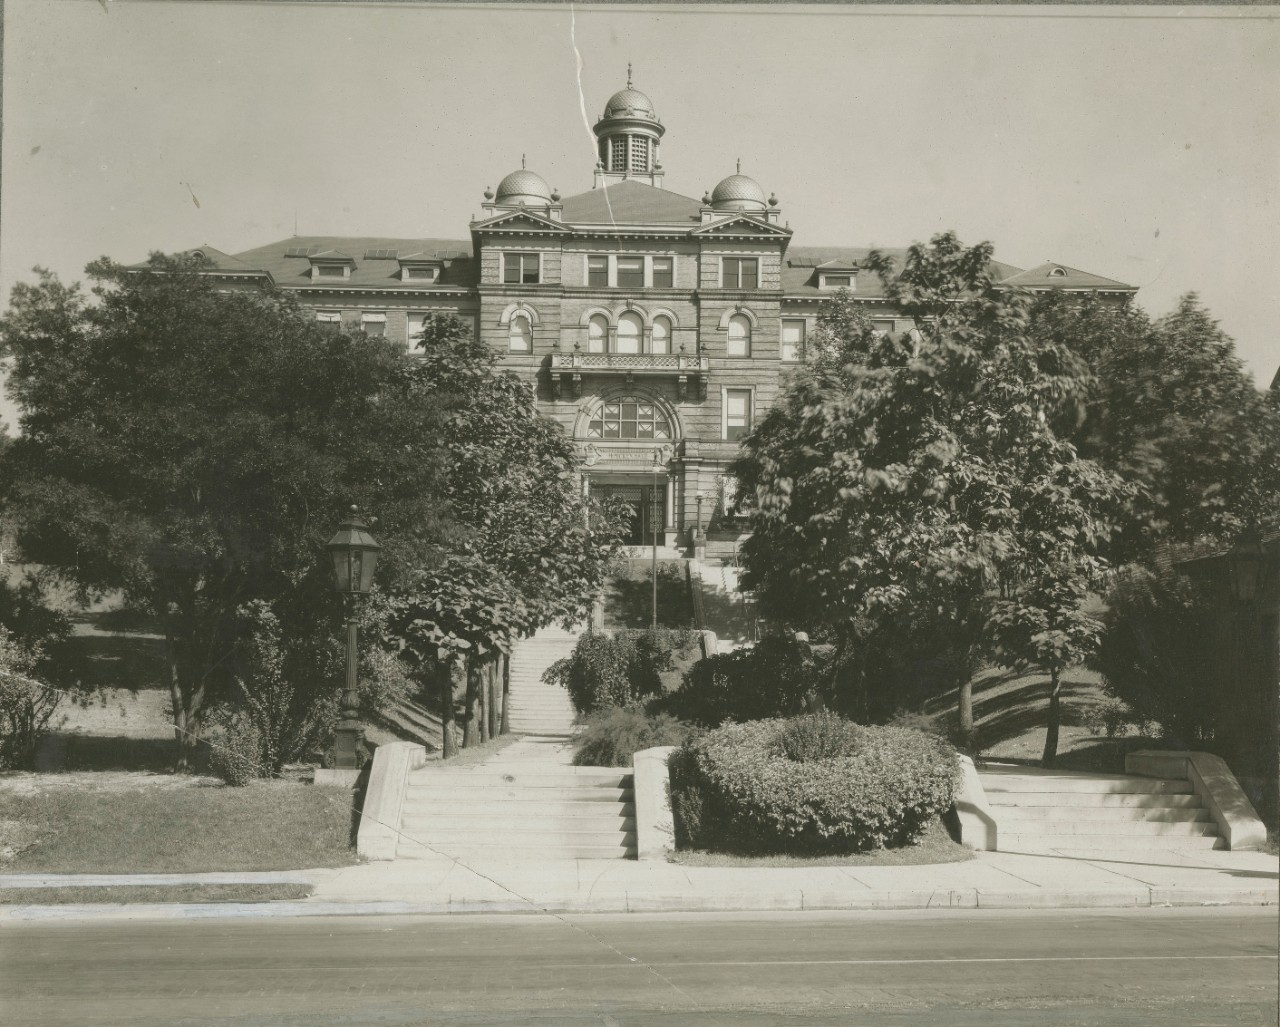 McMicken Hall image from UC Library Archives.